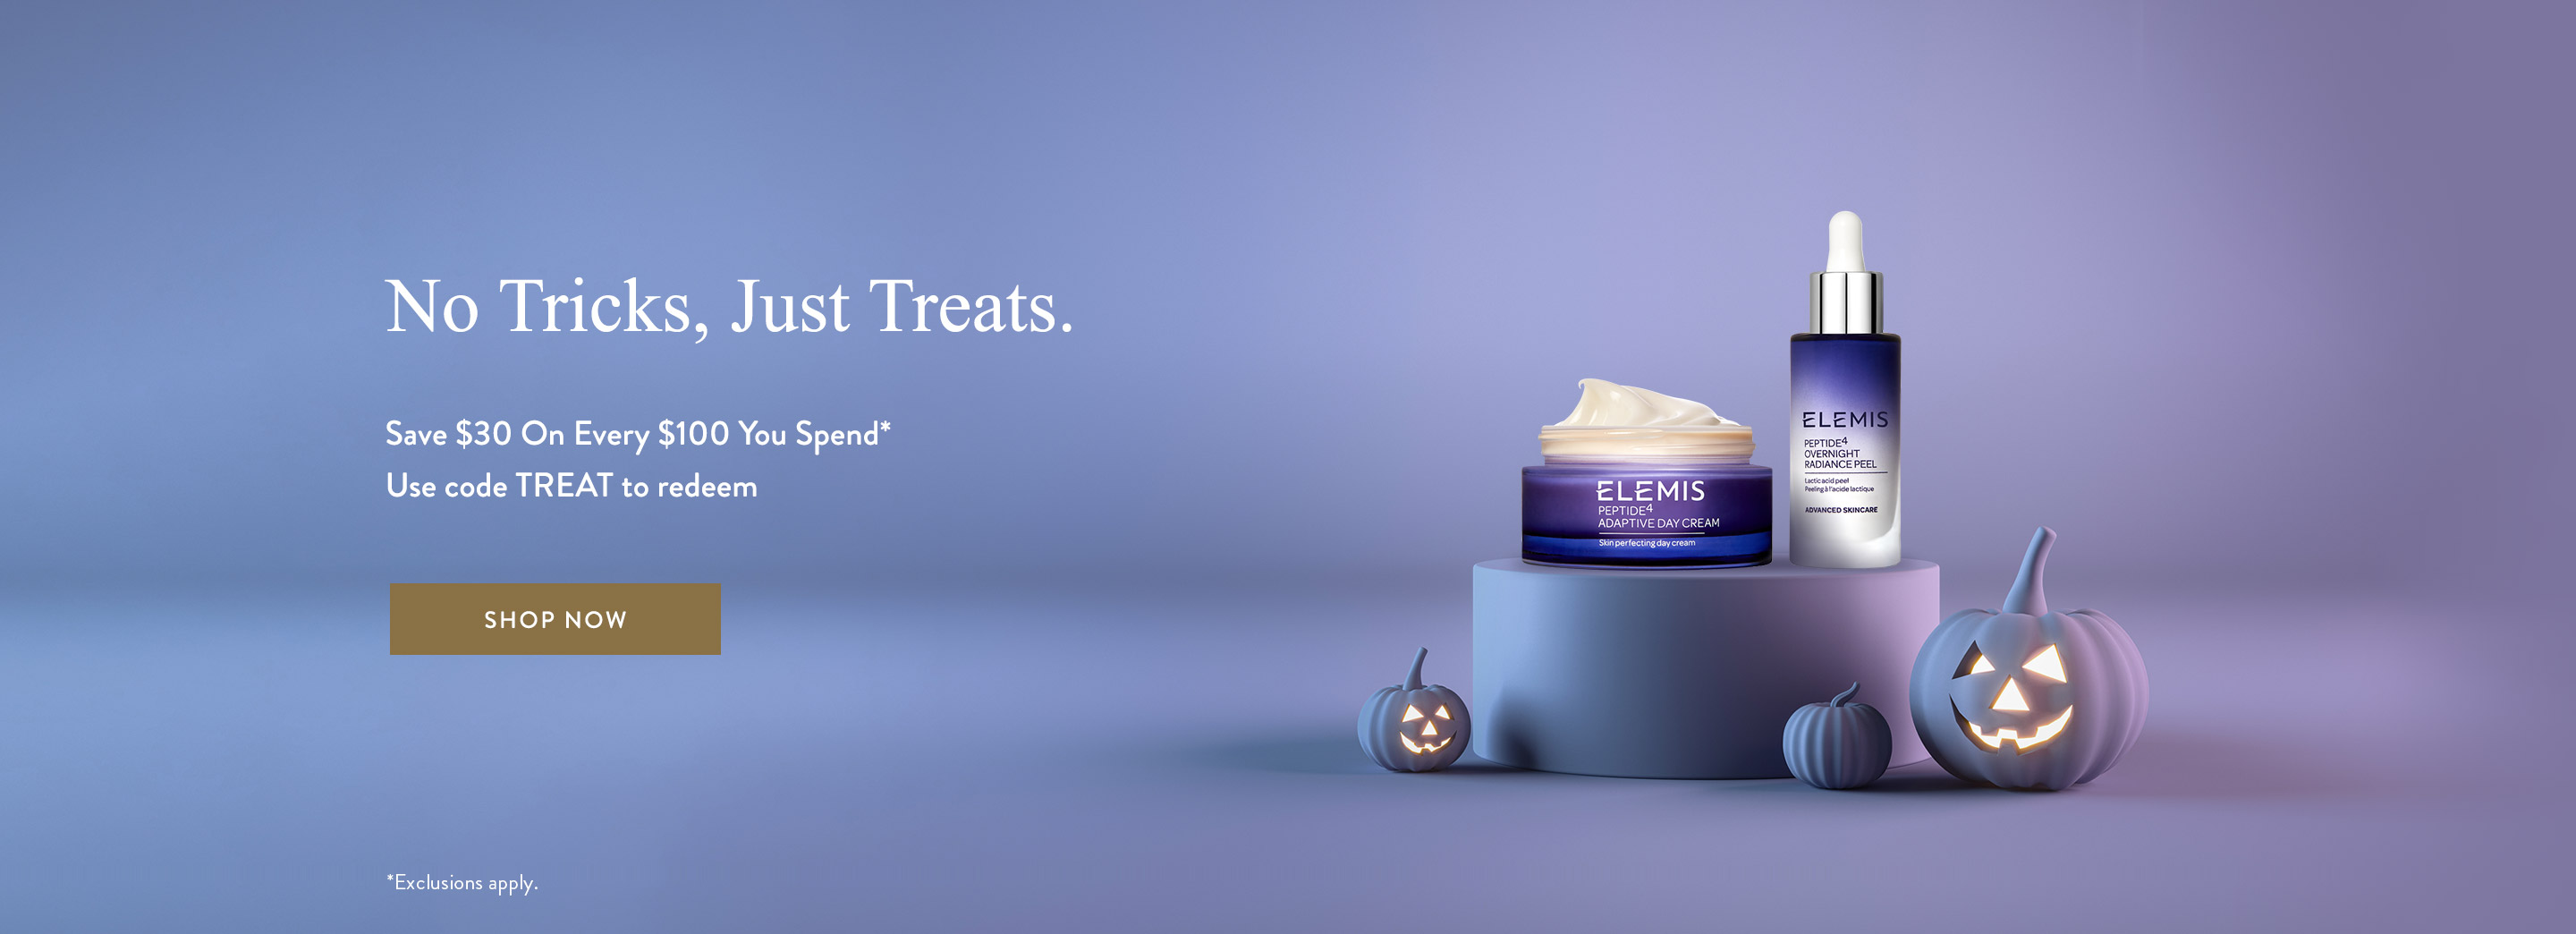 No Tricks, Just Treats. Save $30 on Every $100 You Spend